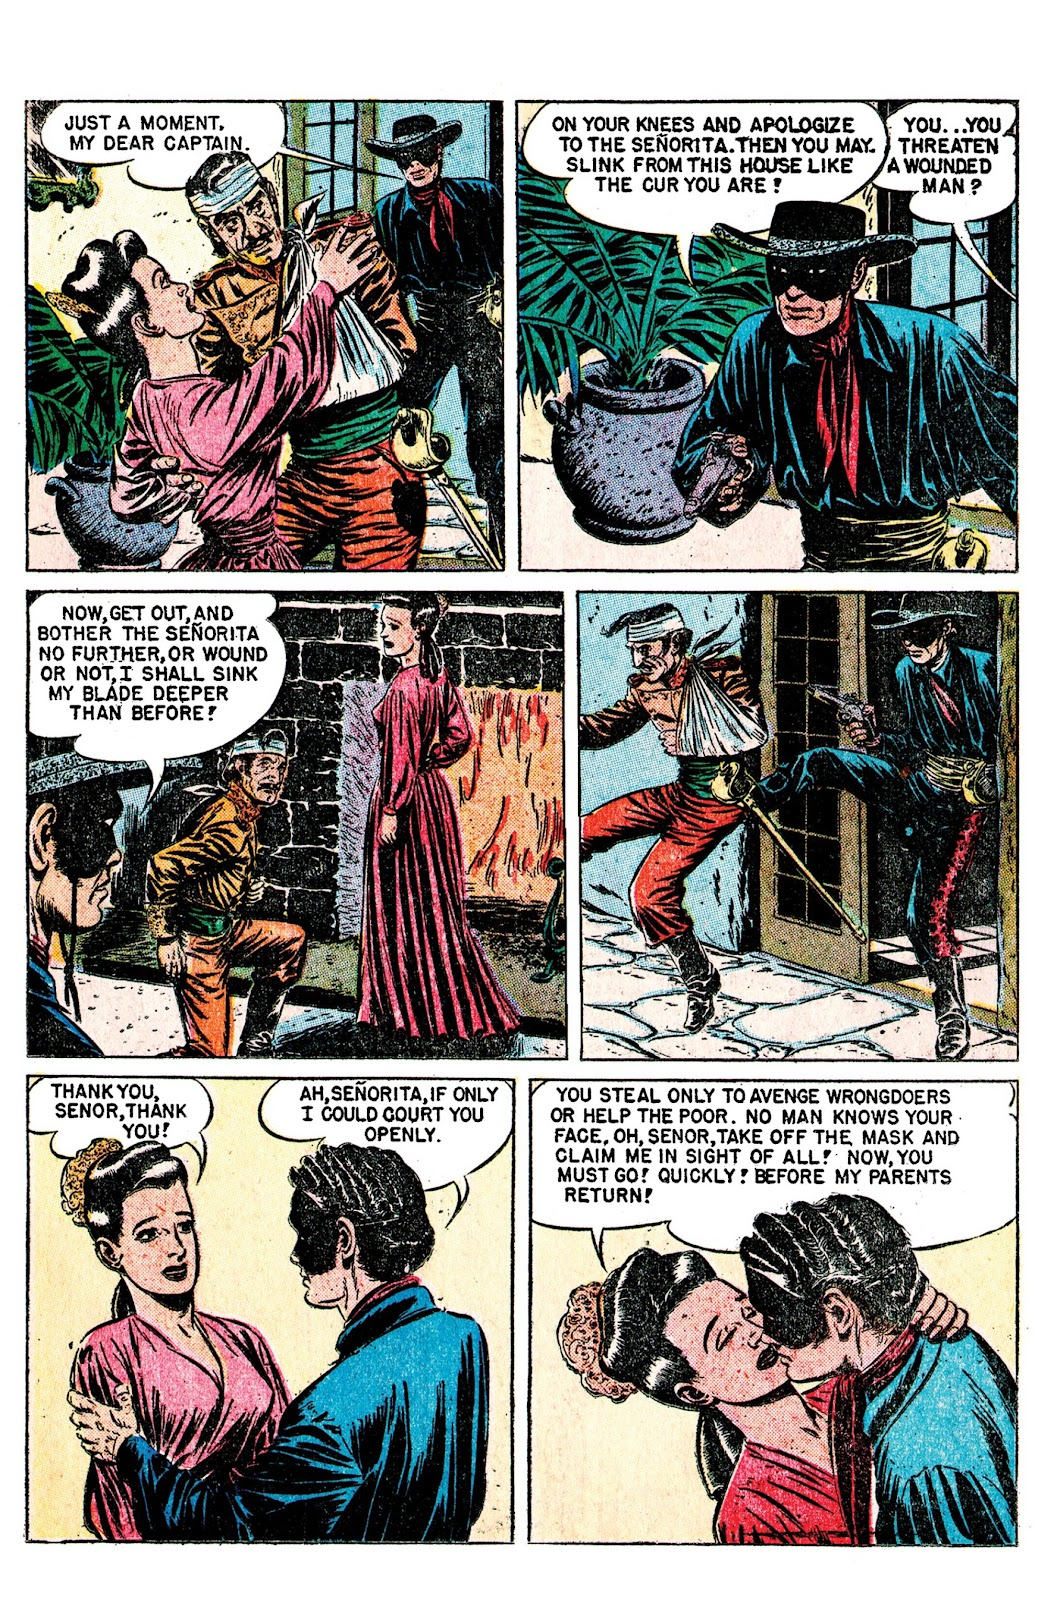 Read online AM Archives: The Mark of Zorro #1 1949 Dell Edition comic -  Issue #1 1949 Dell Edition Full - 19